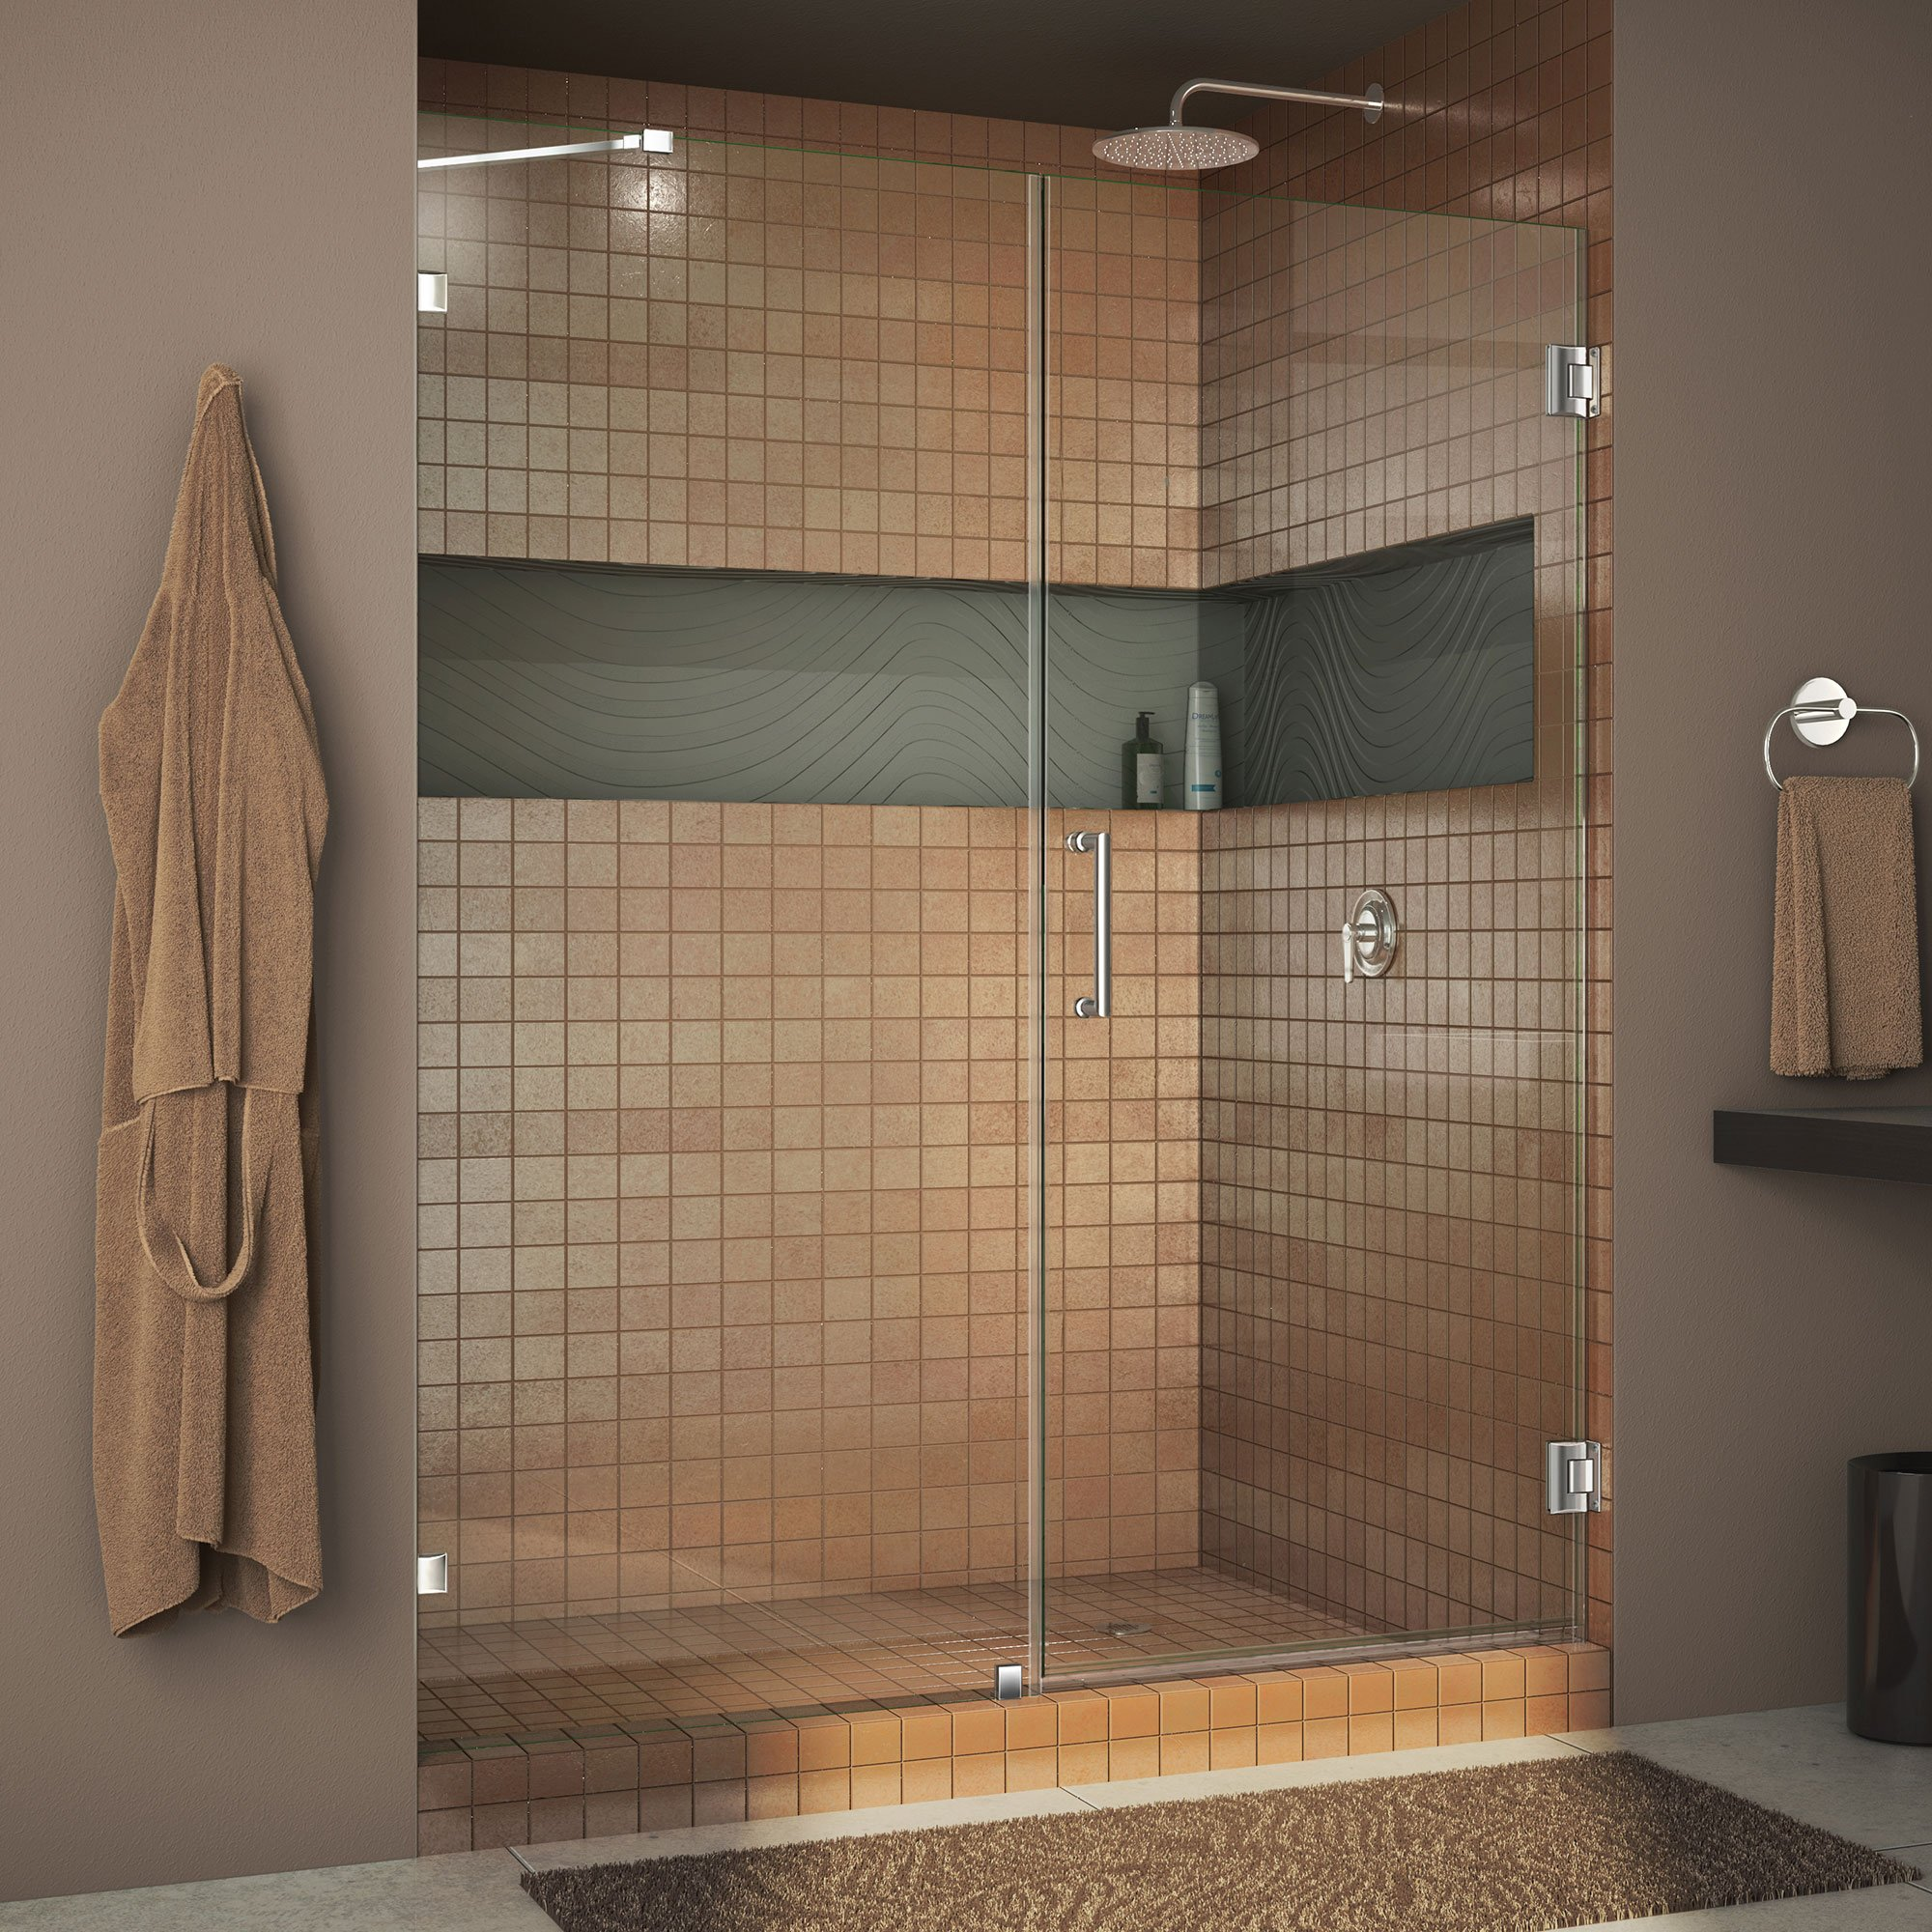 DreamLine Unidoor Lux 56 in. Width, Frameless Hinged Shower Door, 3/8'' Glass, Chrome Finish by DreamLine (Image #1)